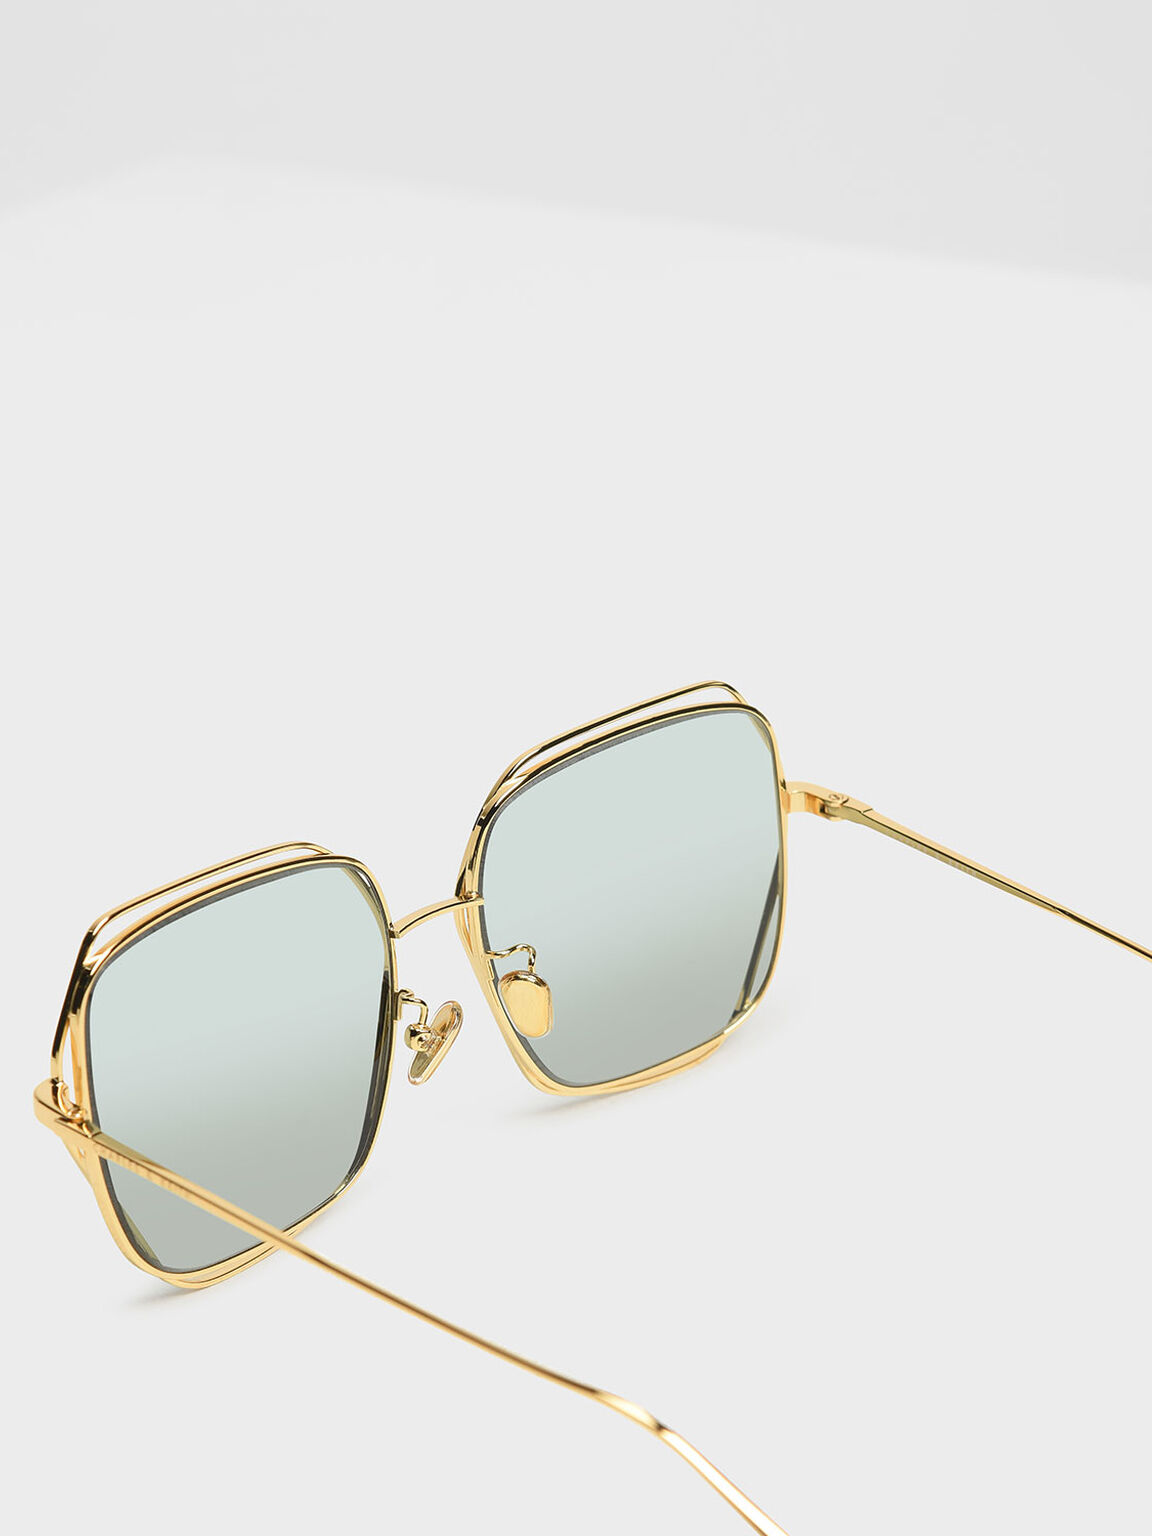 Double Rim Geometric Sunglasses, Green, hi-res